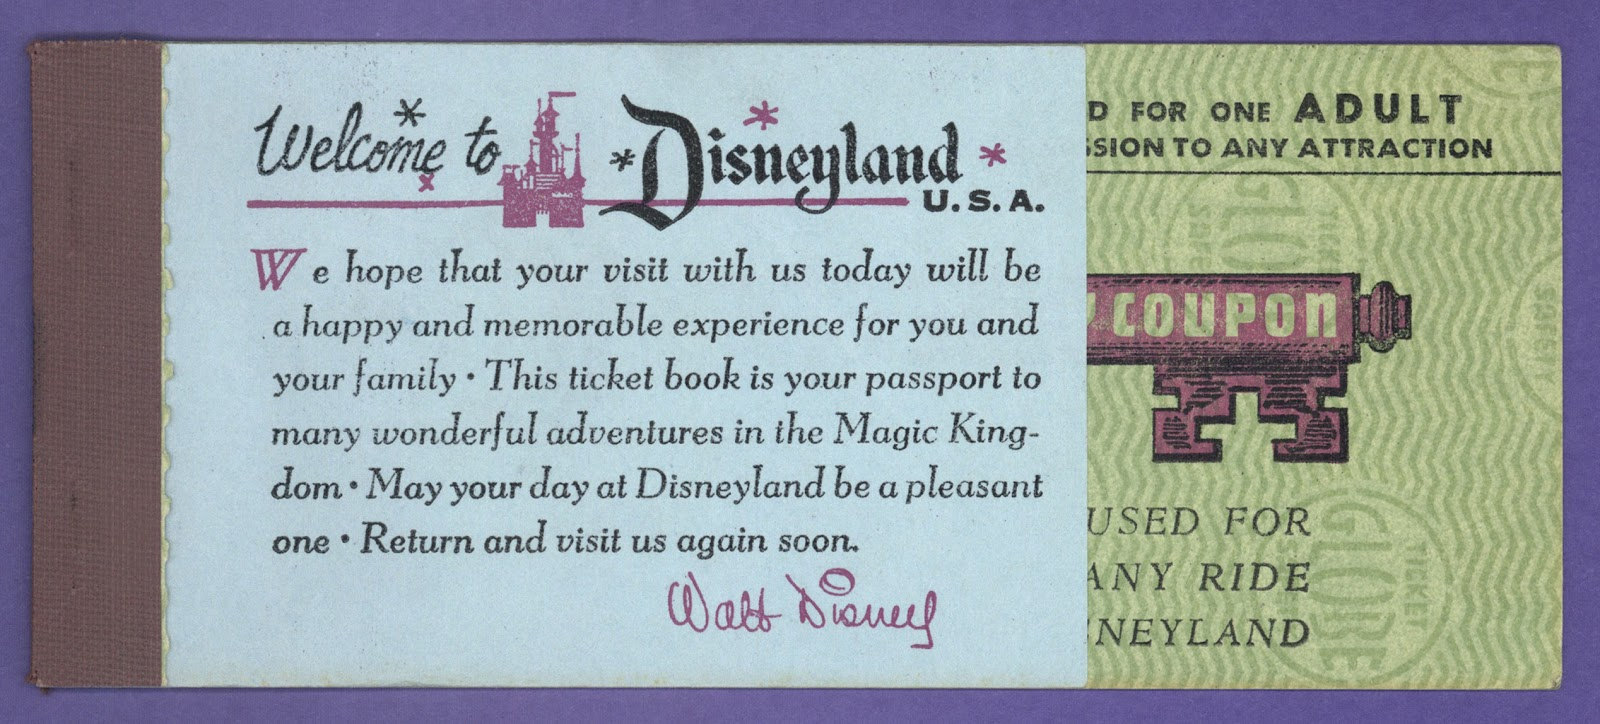 Disney magic kingdom coupons